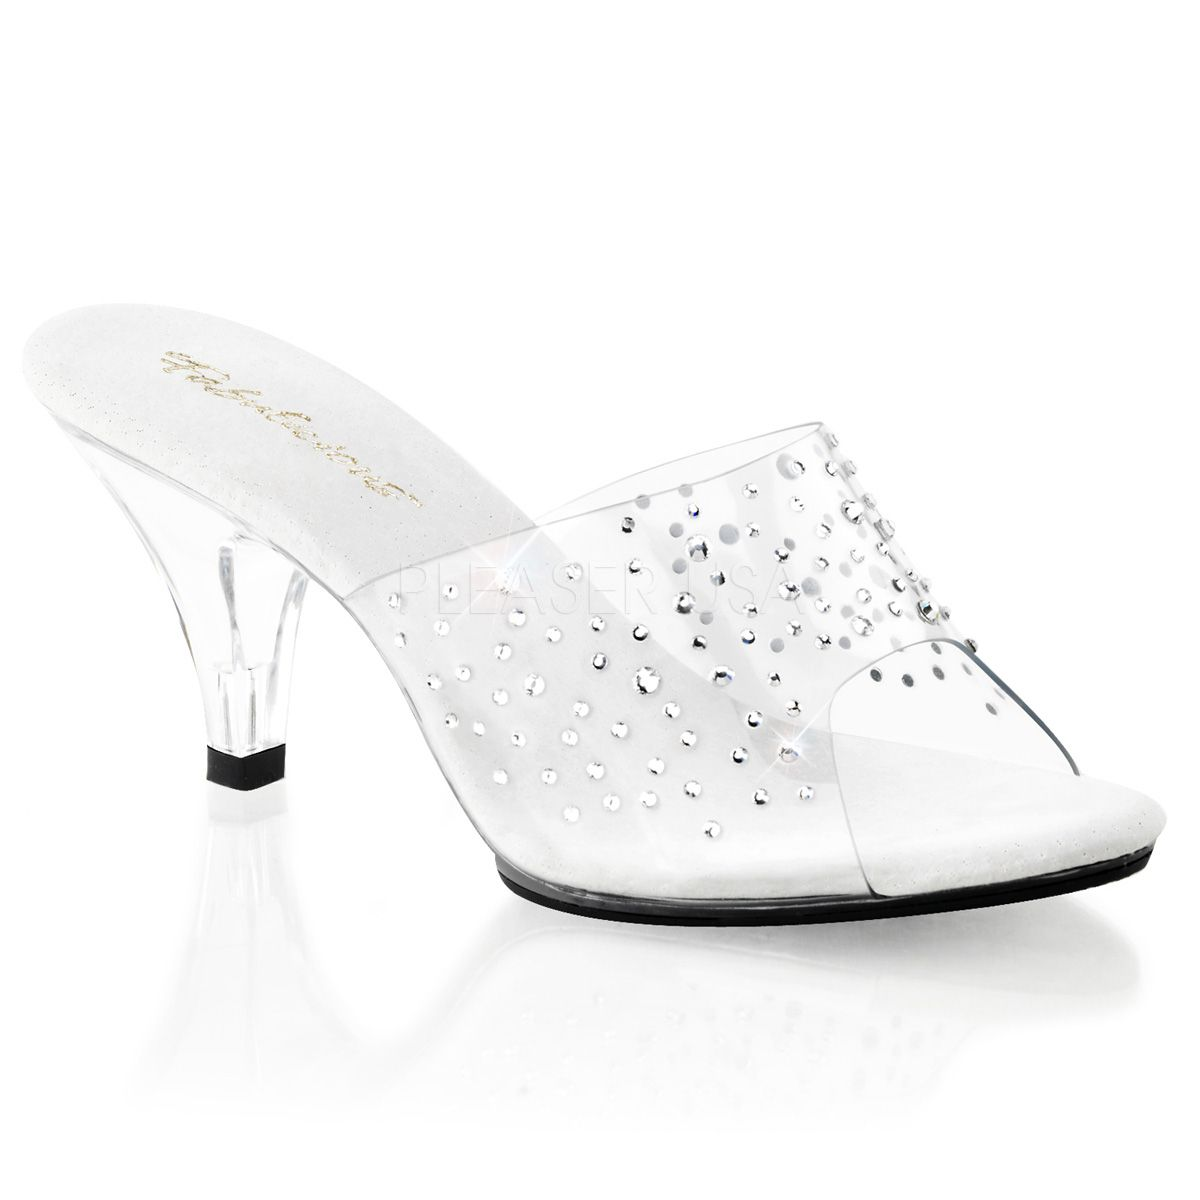 1950s Style Shoes Fabulicious Shoes Belle-301RS Crystal Encrusted Slip-On Mules £64.95 AT vintagedancer.com